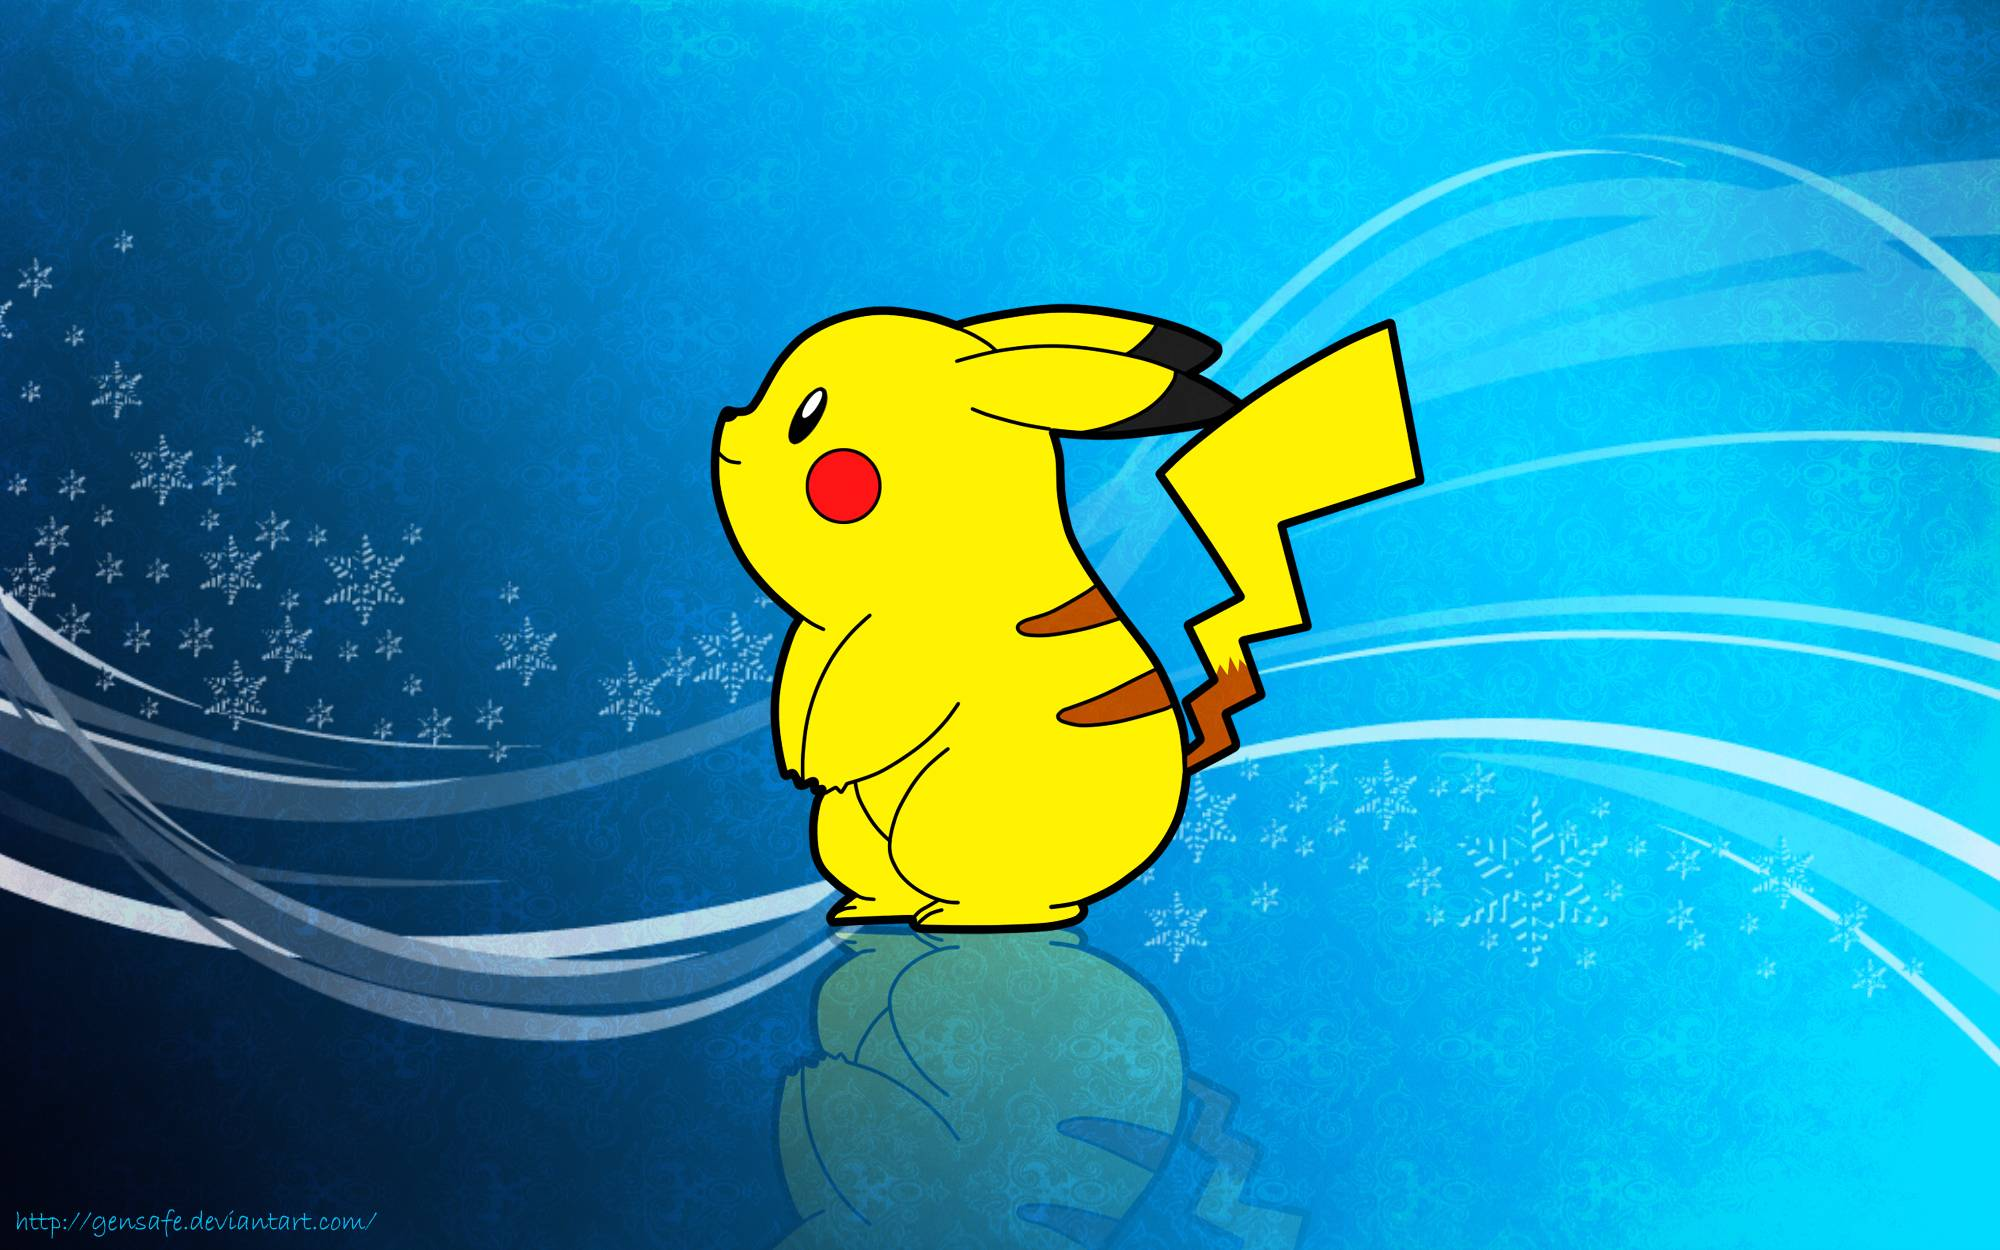 pikachu pokemon wallpaper - photo #29